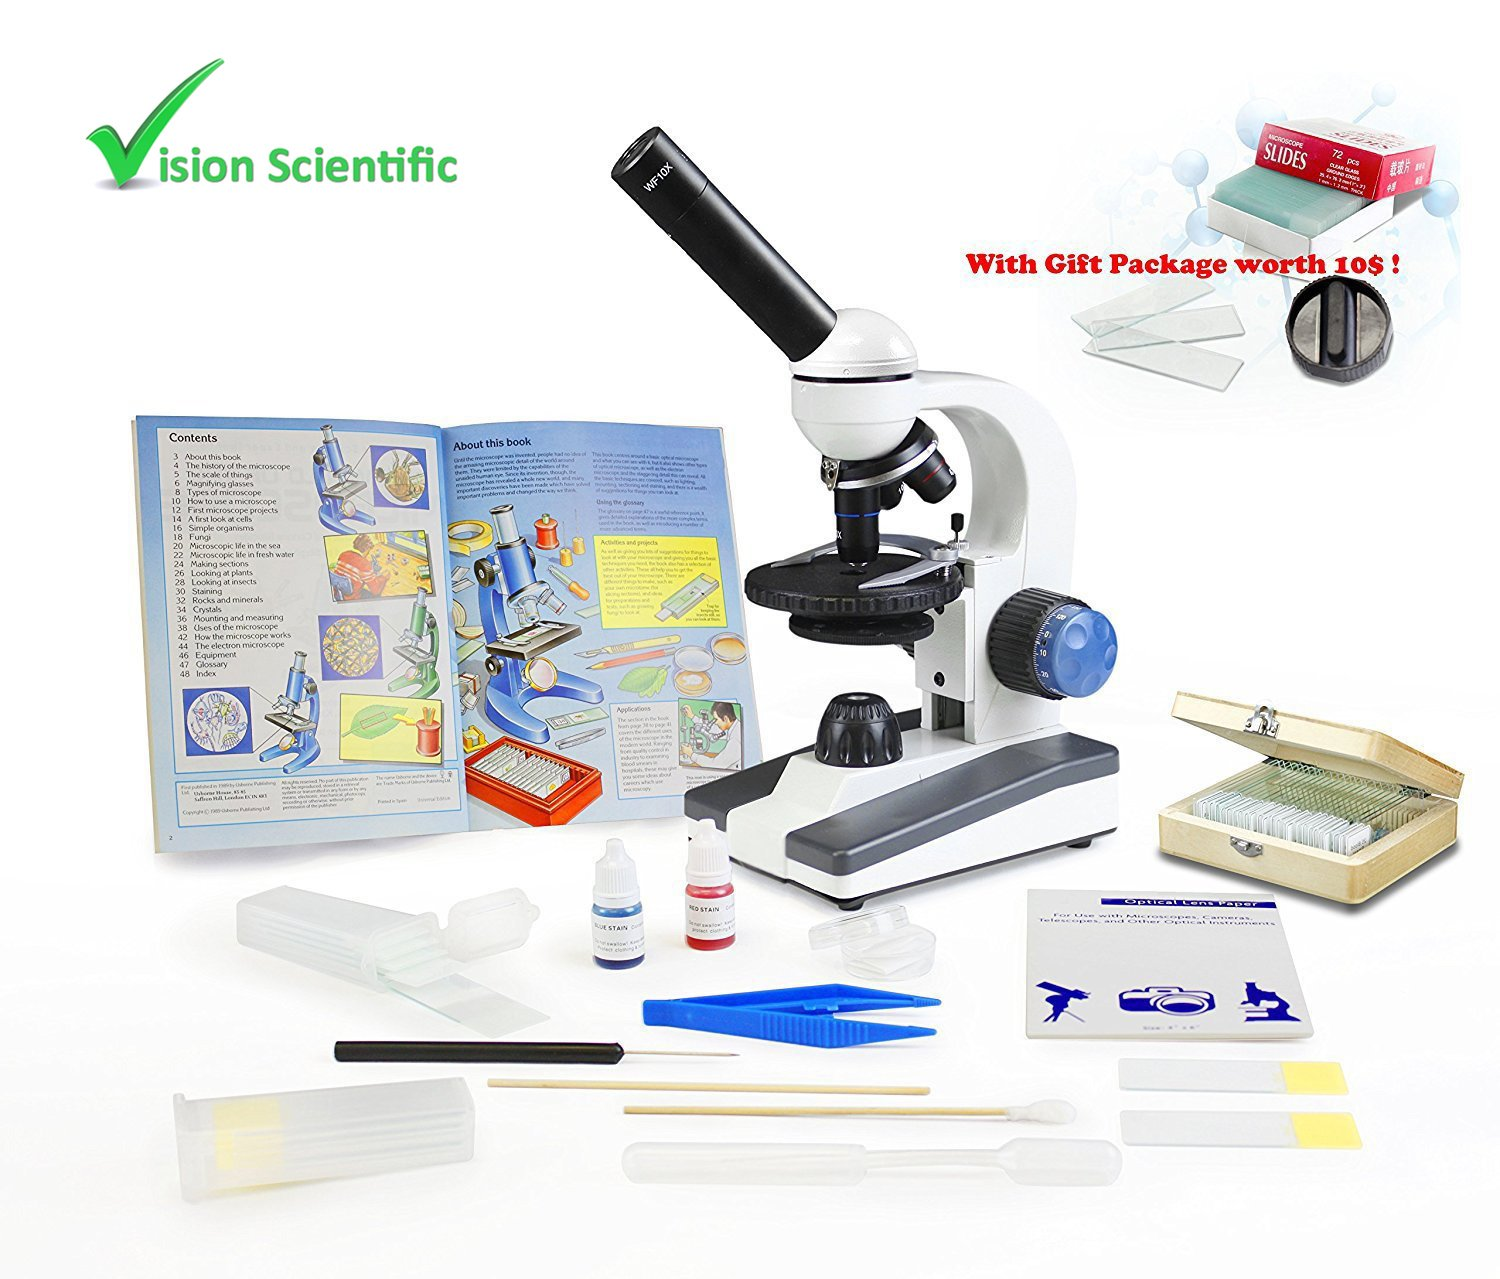 VIsion Scientific VME0018-RC-P2 Monocular Elementary Level Microscope, 40x-1000x Magnification, Microscope Book, Microscope Discovery Kit, 25 Prepared Slides Set, Free Gift Package ($10 Value)